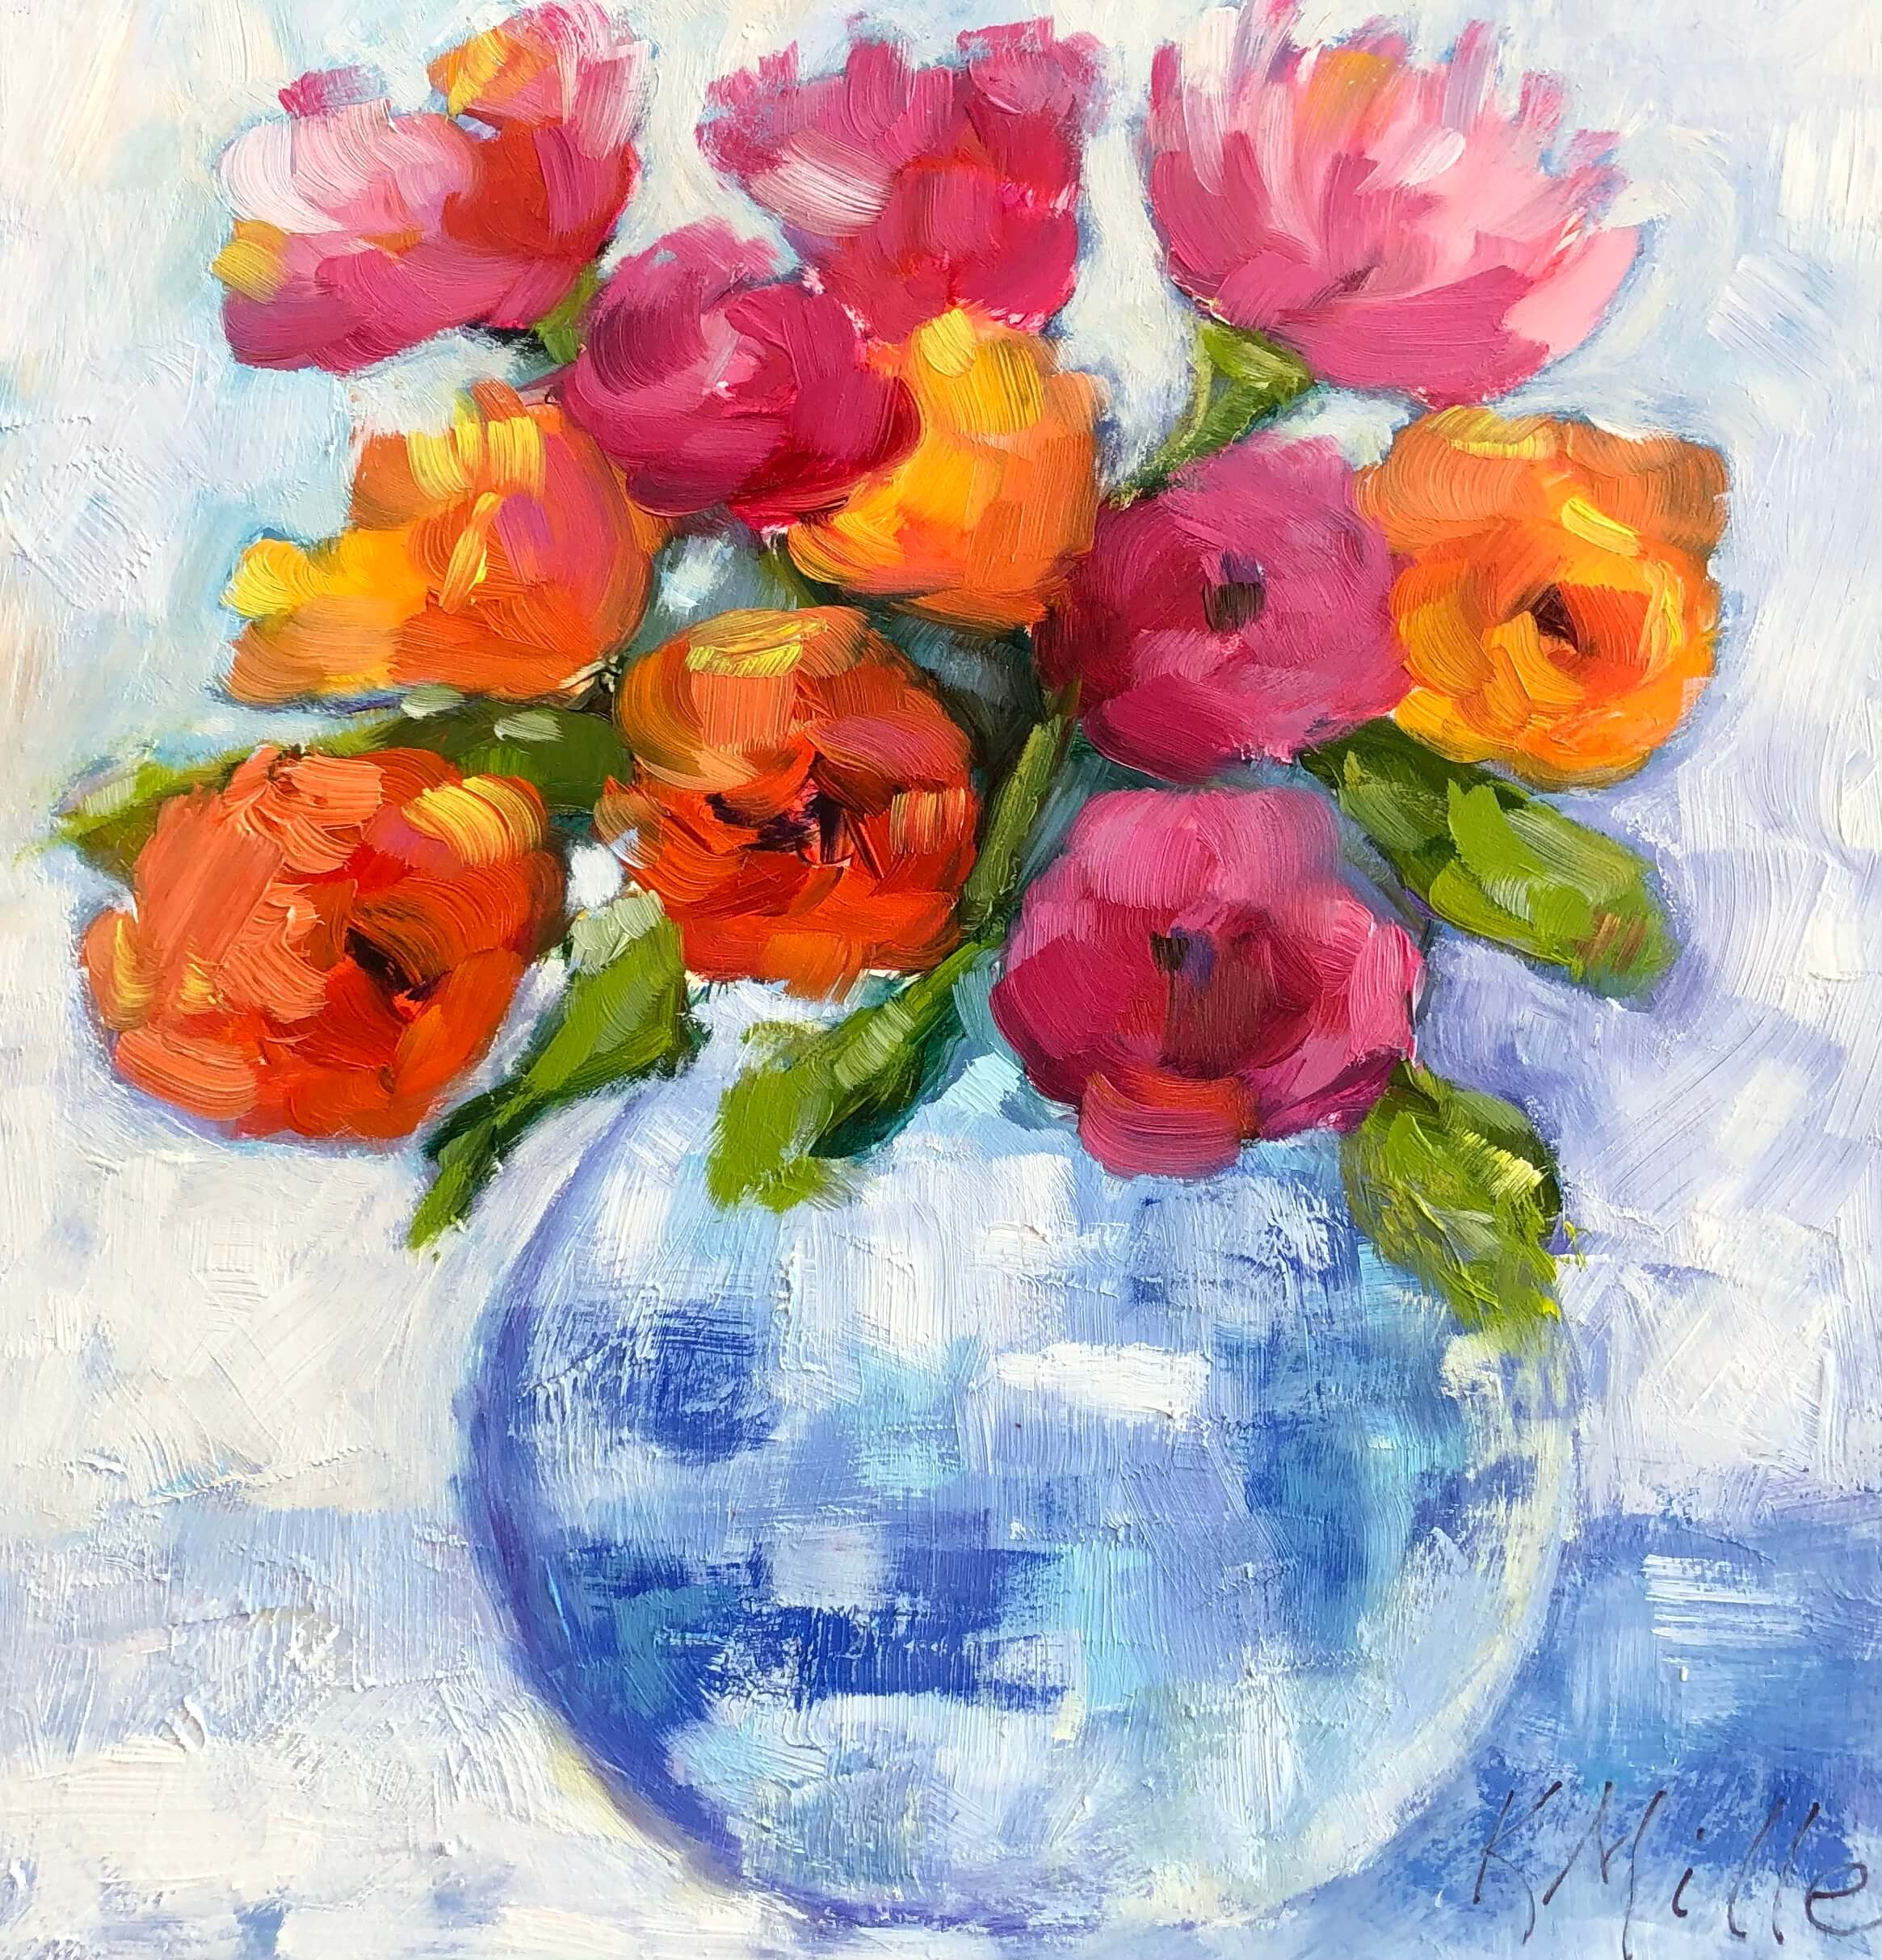 Flowers in Blue and White Vase original oil on museum panel by Kathy Miller